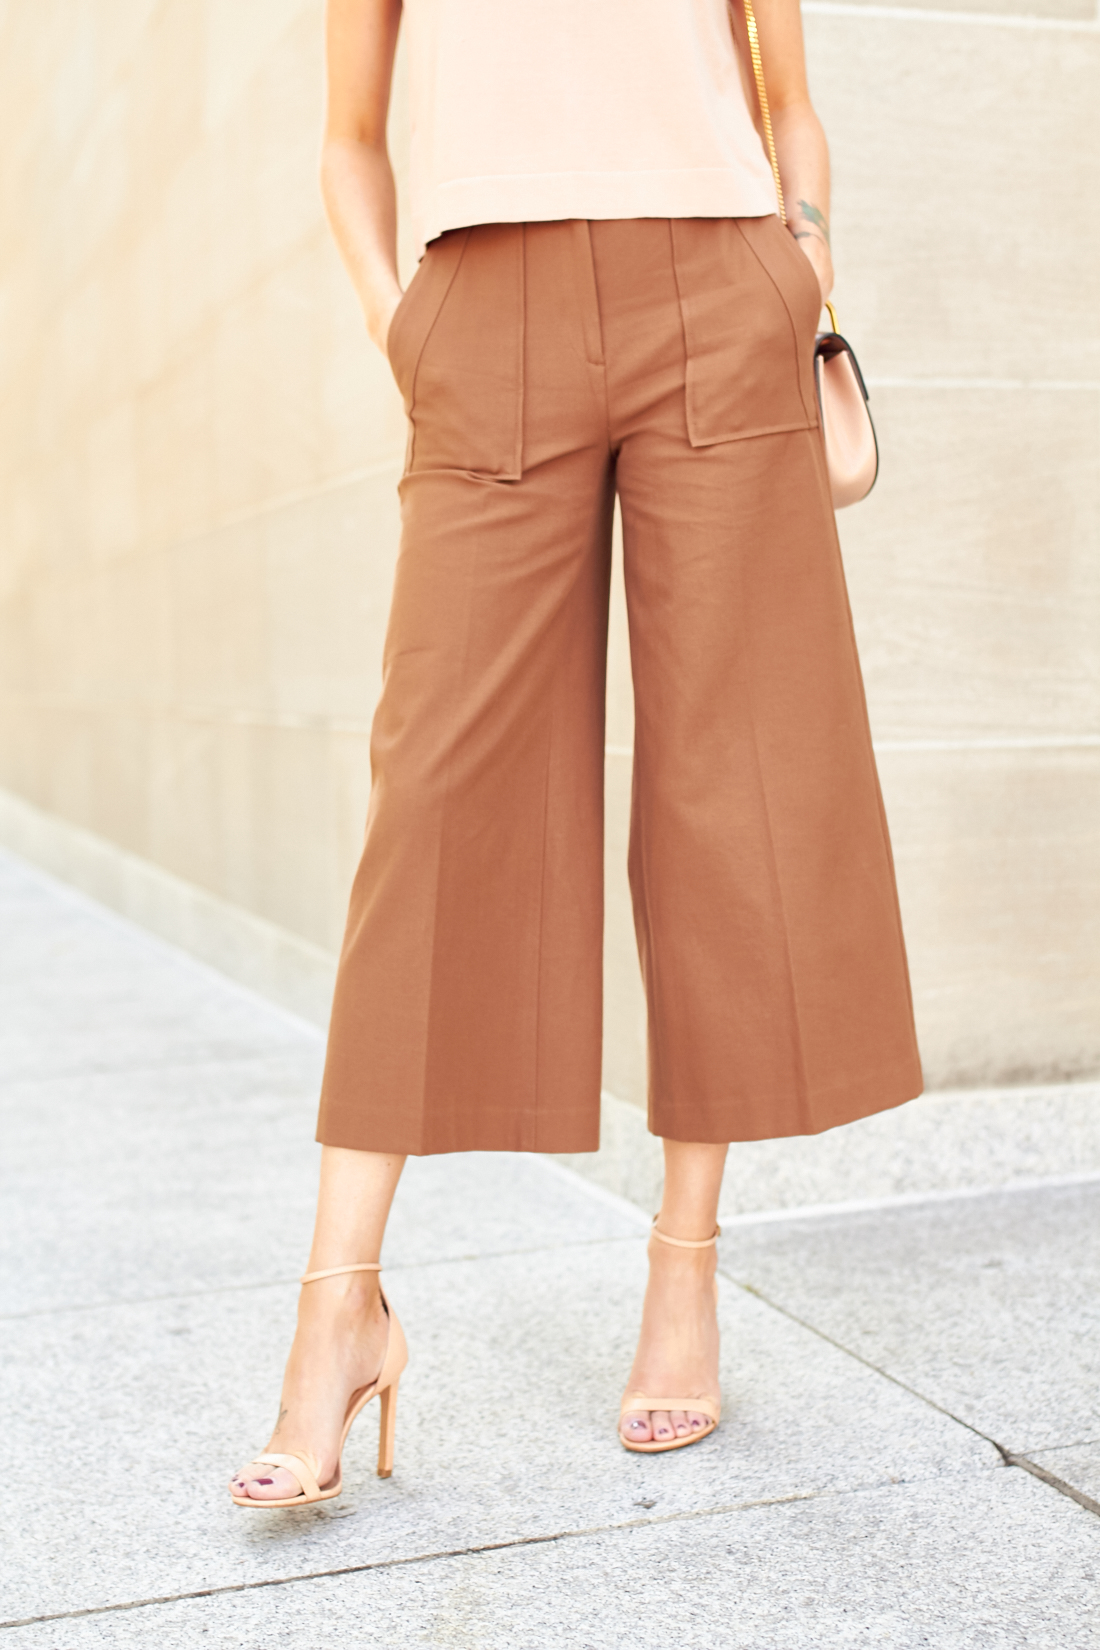 Shop Target for Wide Leg Pants you will love at great low prices. Spend $35+ or use your REDcard & get free 2-day shipping on most items or same-day pick-up in store.